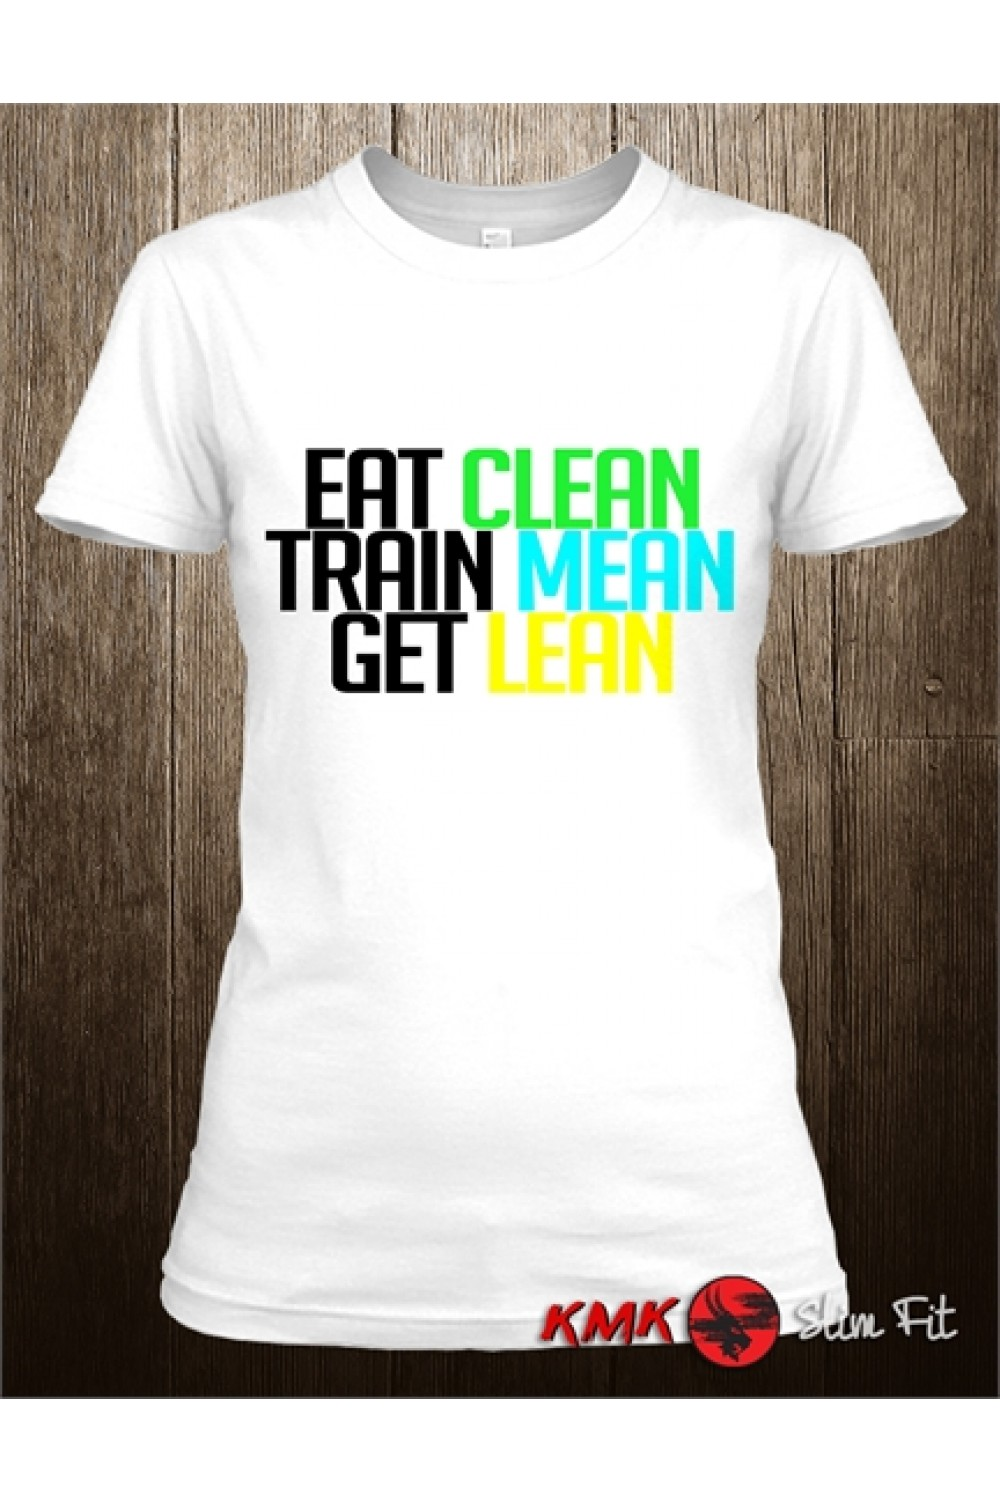 Eat clean Printed T shirt | Get Lean lady Tee | Train Mean Lady T-shirt